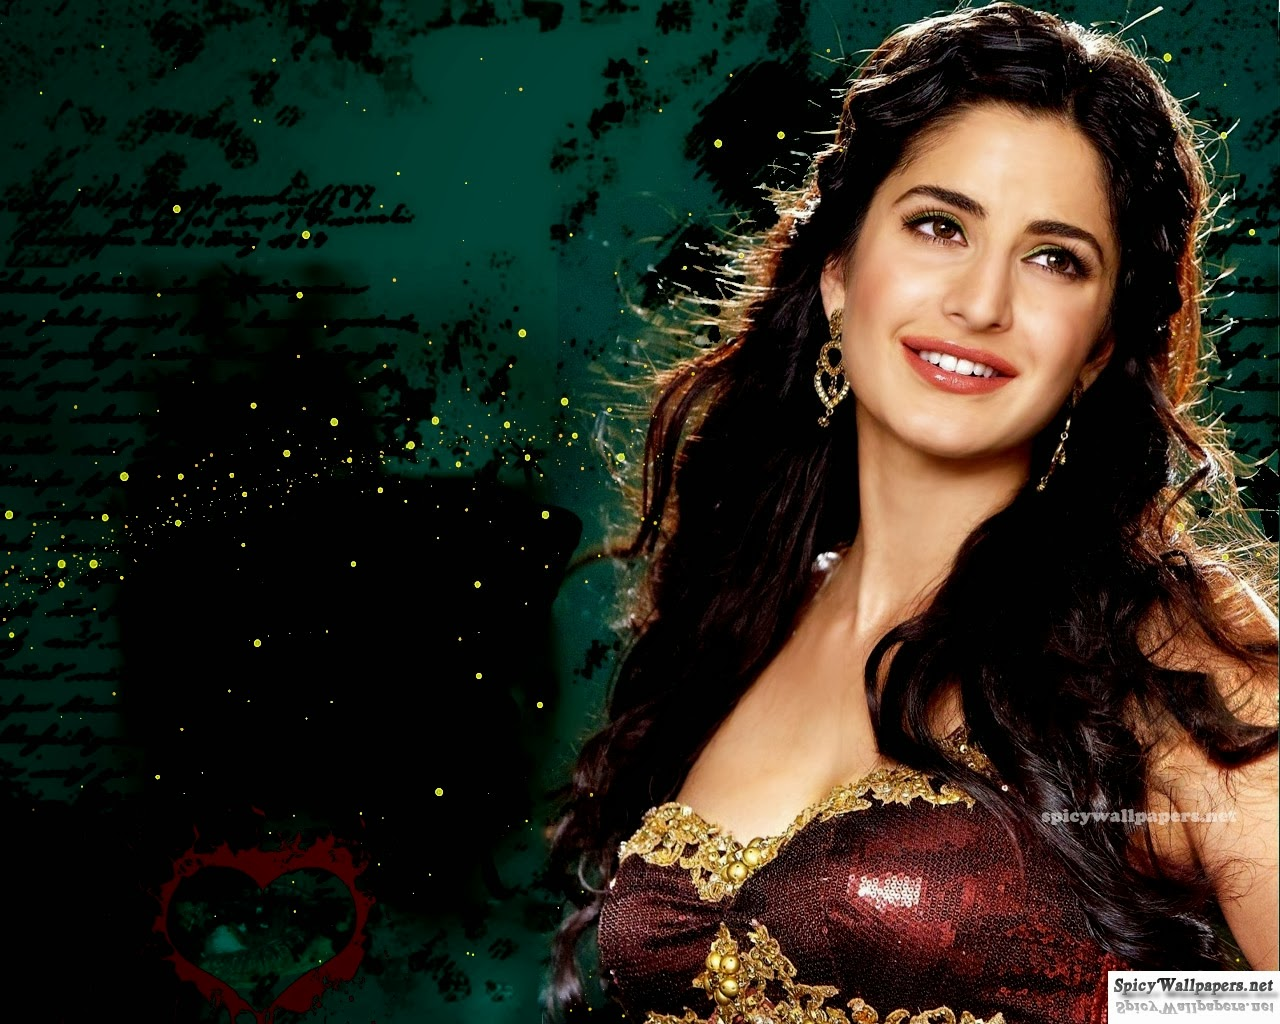 katrina kaif upcoming movies 2013-Katrina Kaif ~ Wallpaper ...